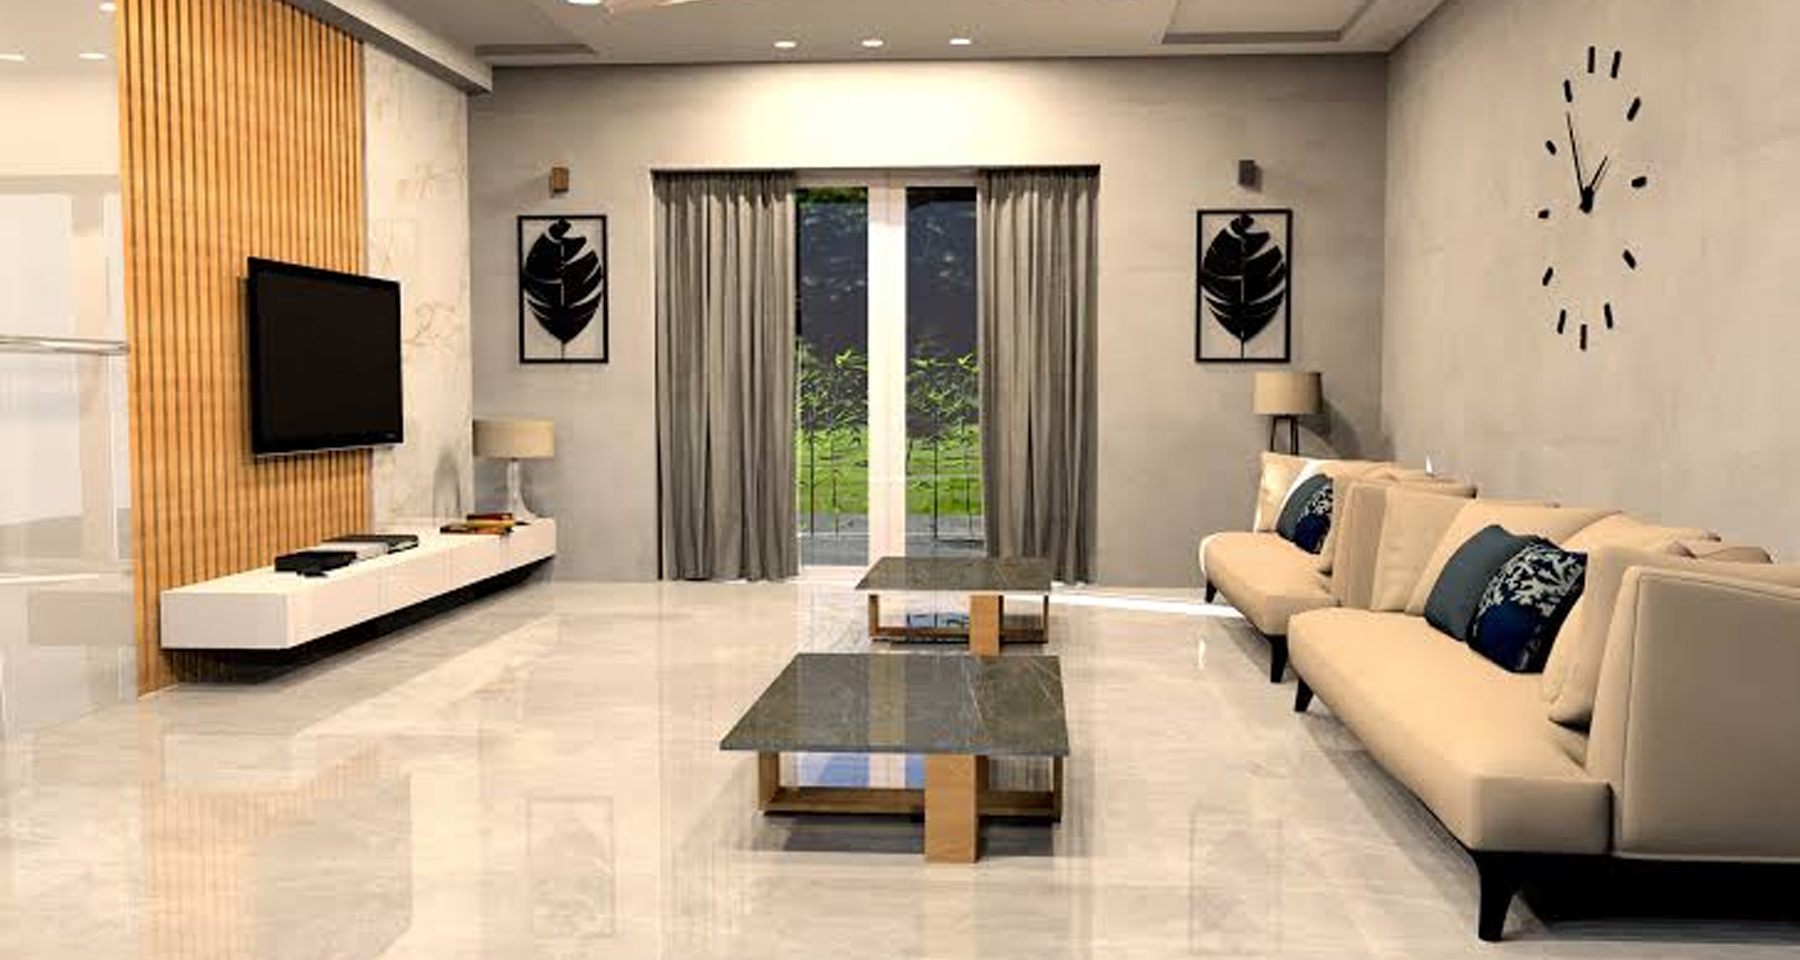 Samridhi Luxuriya Avenue Noida , Sector 150